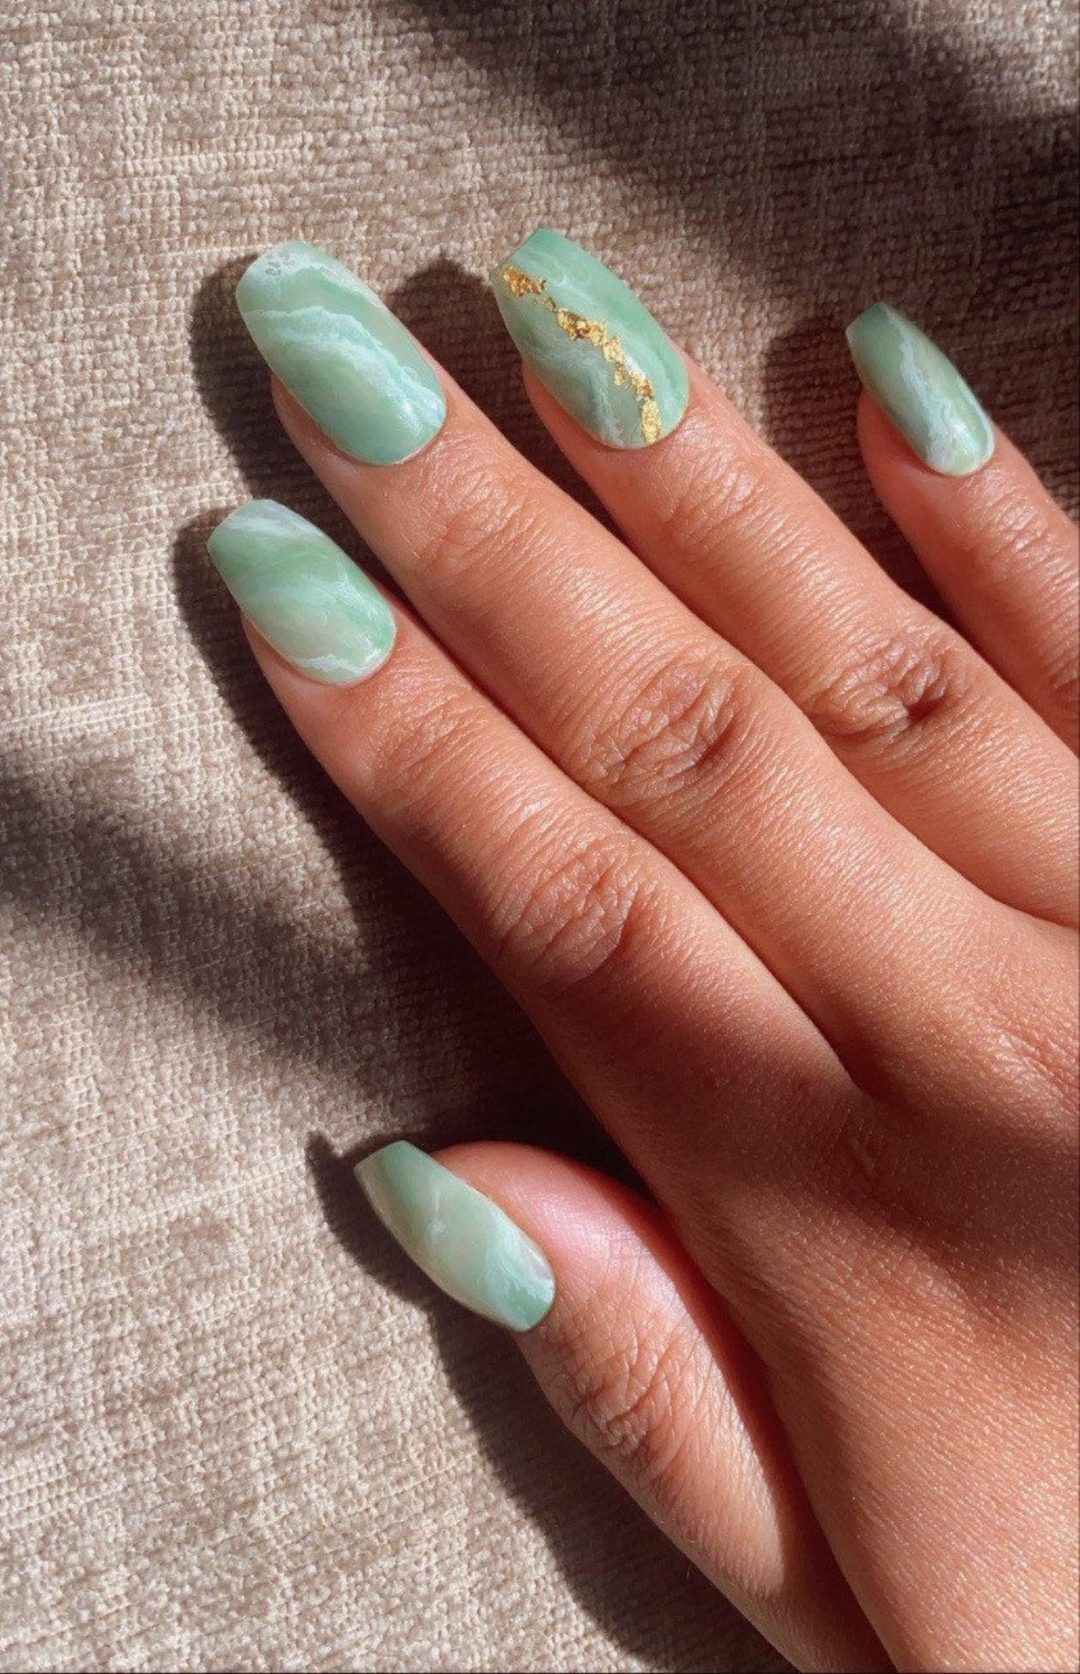 Marble nails with gold specks